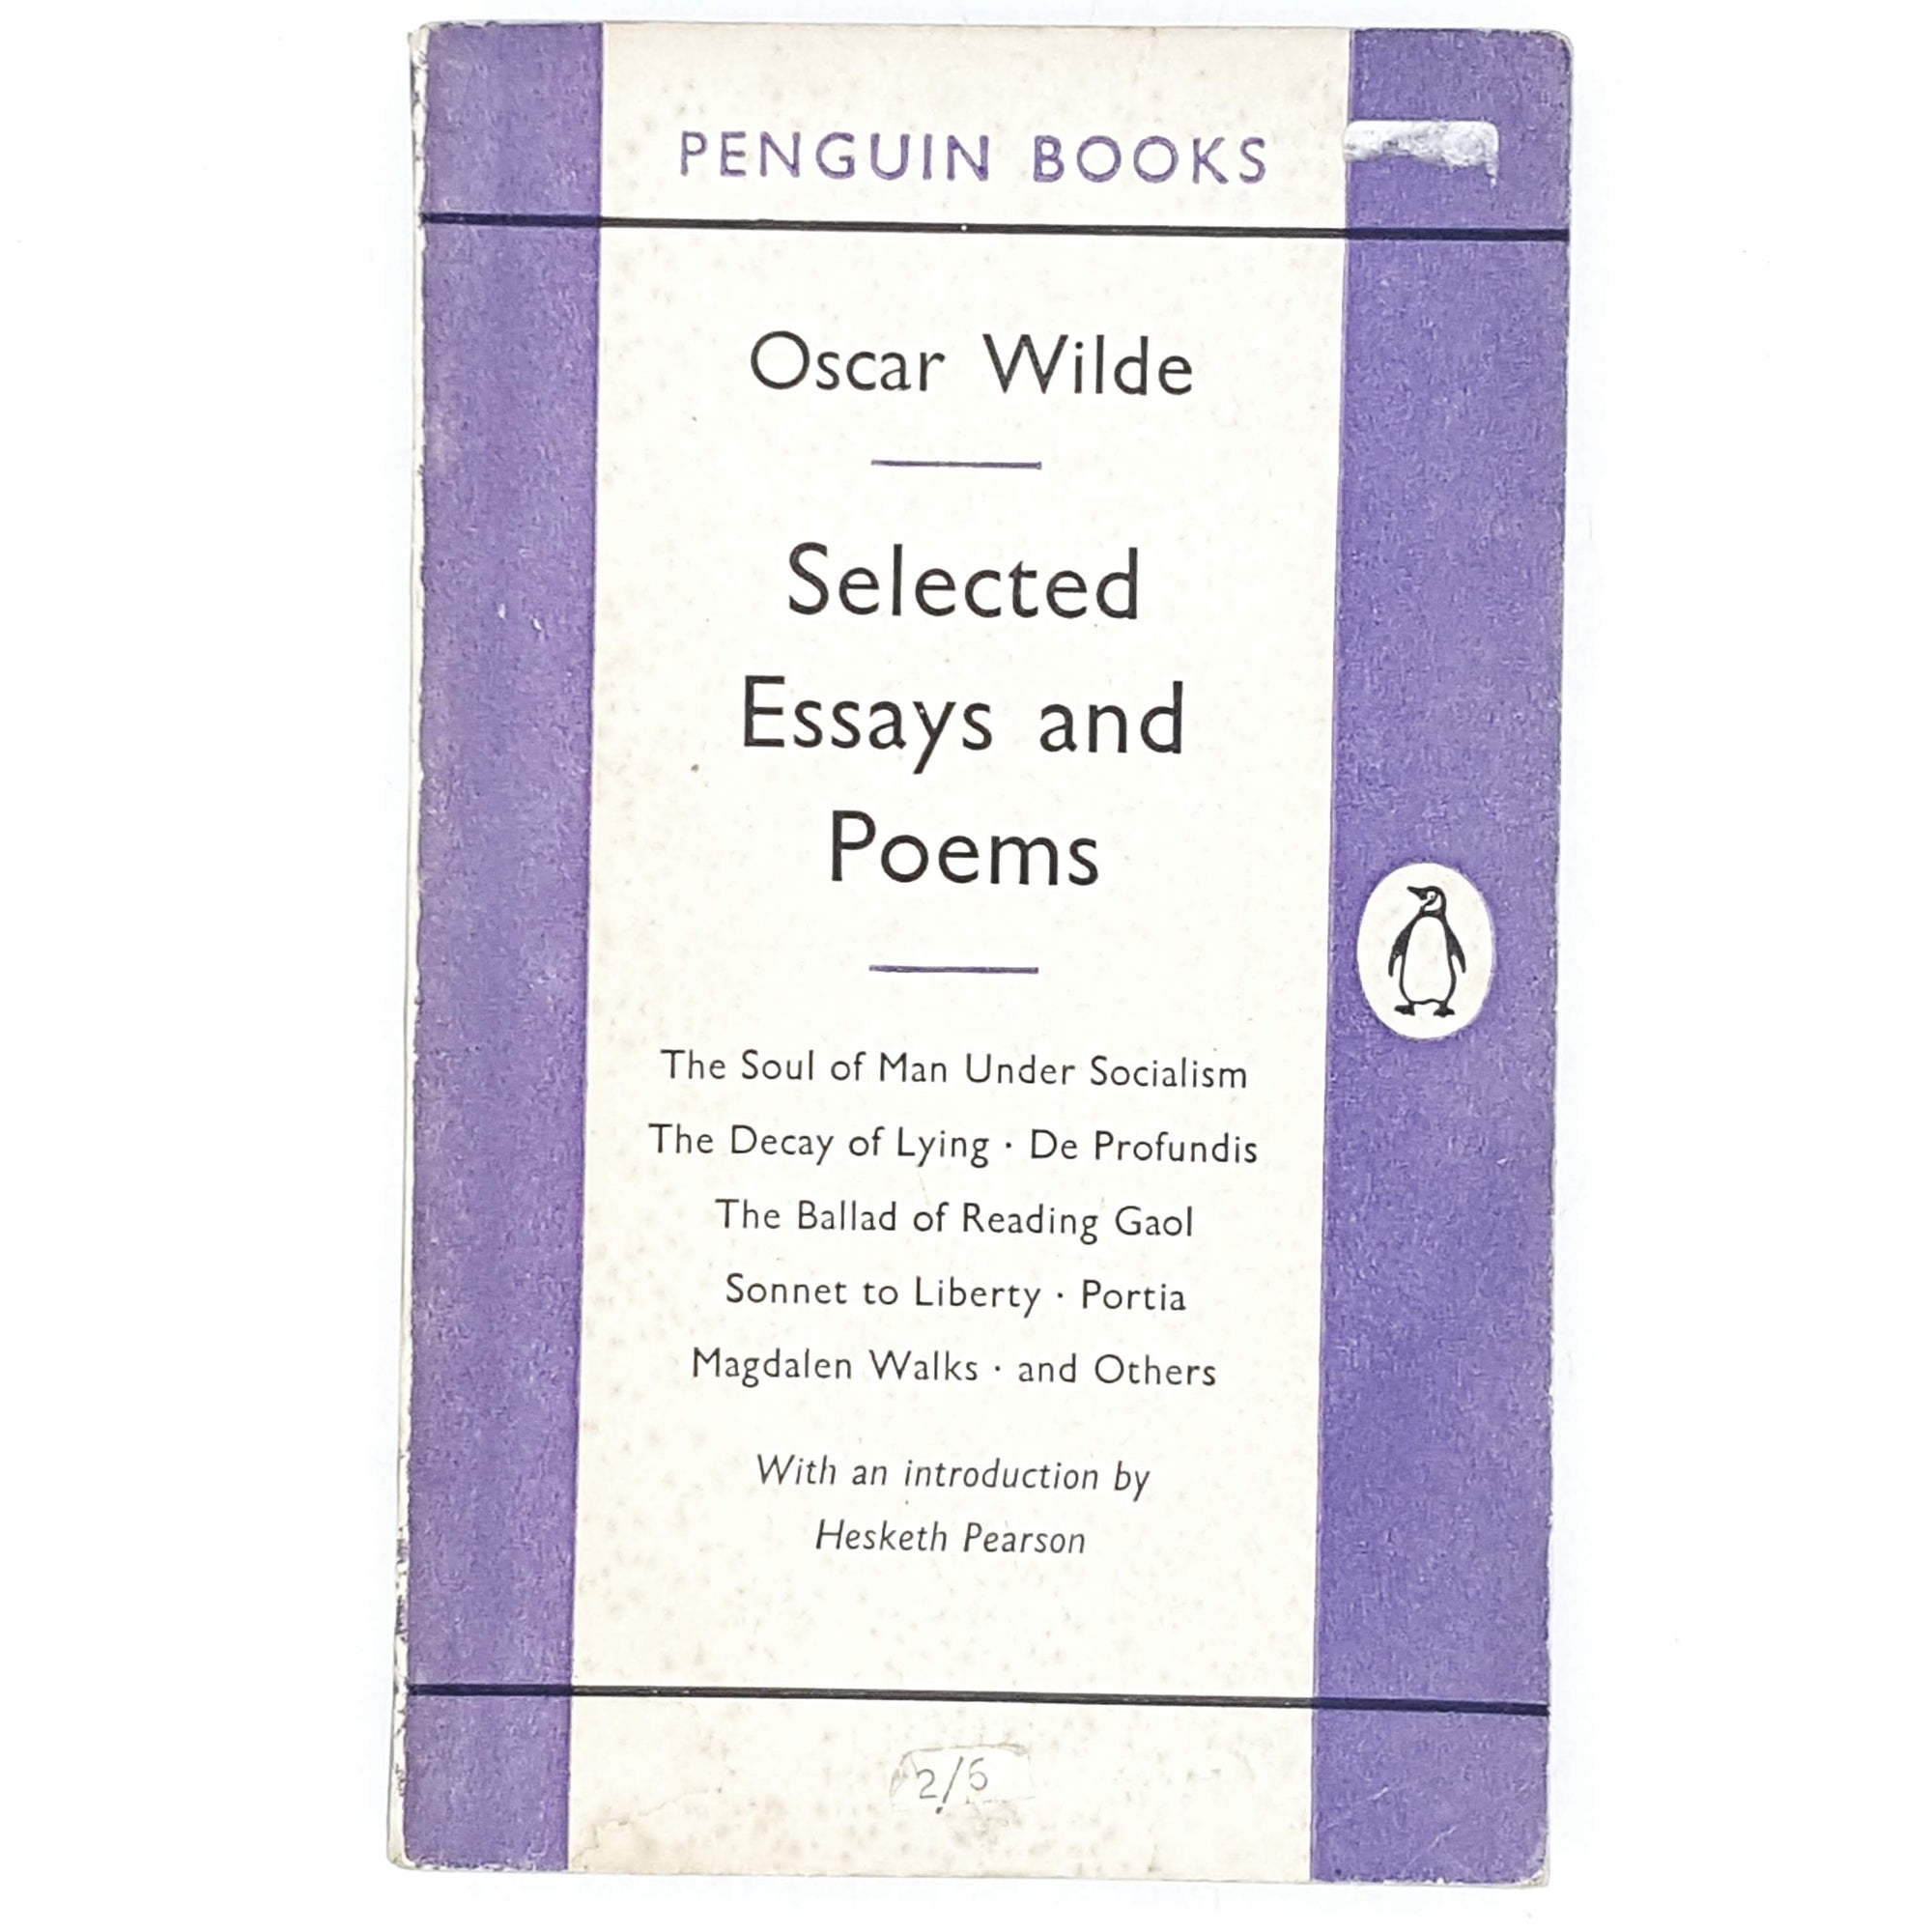 First Edition Oscar Wilde's Selected Essays and Poems 1954